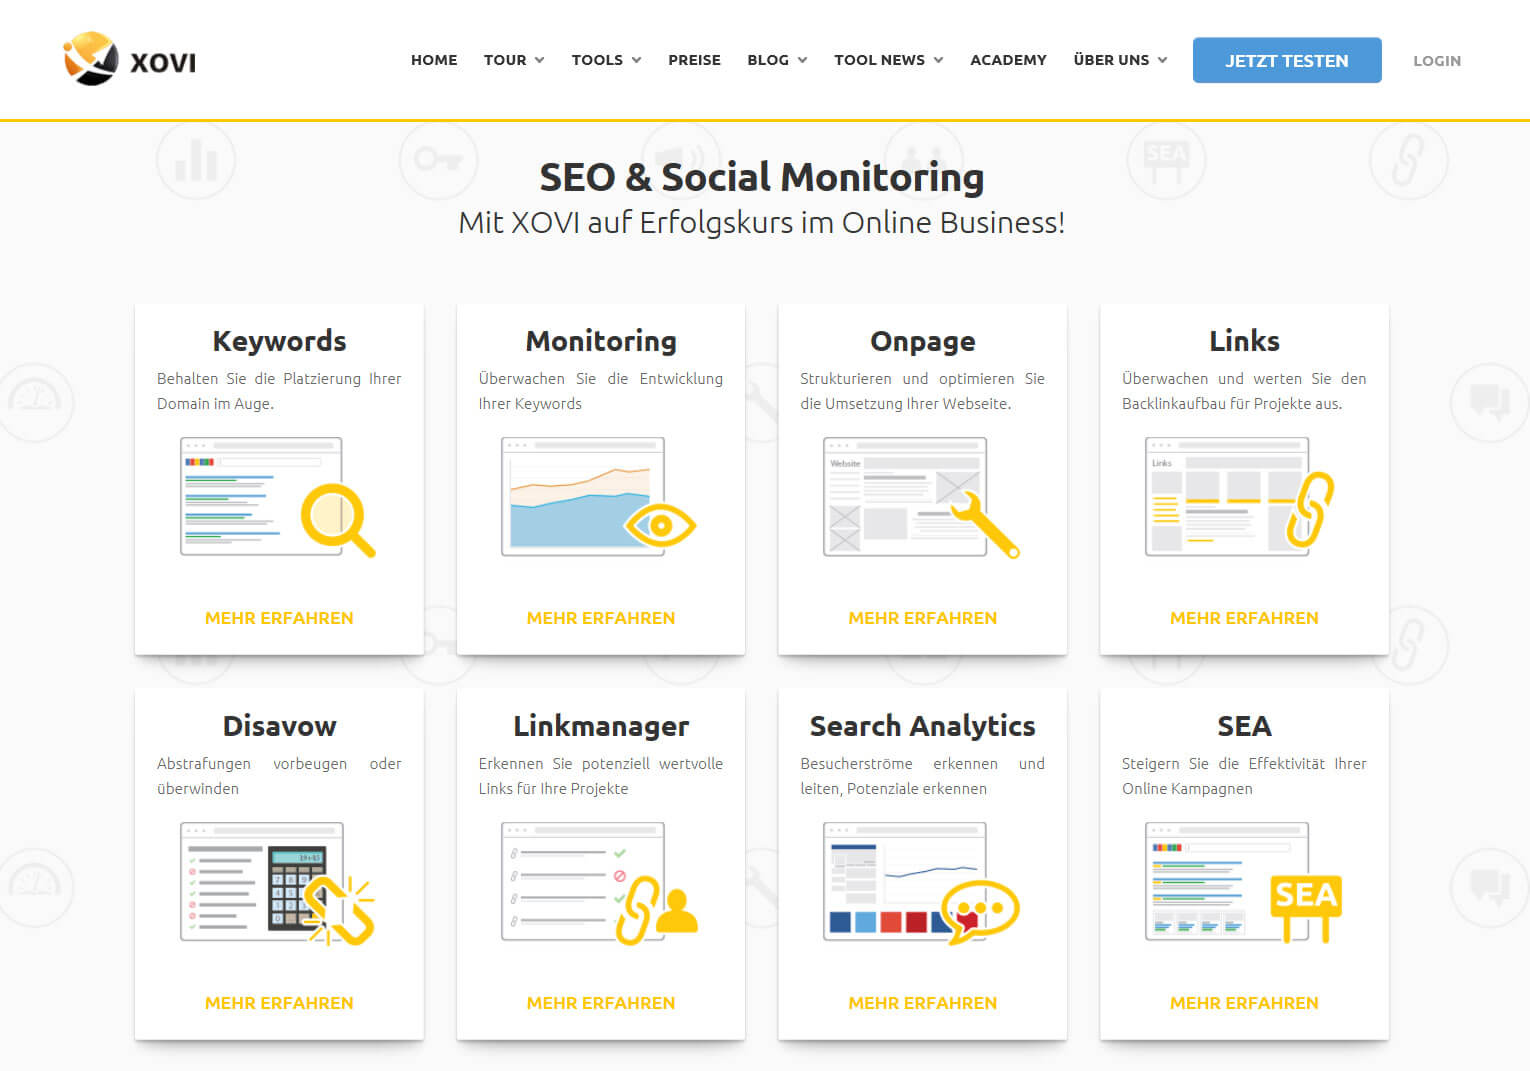 XOVI – das SEO-Tool im Online Marketing